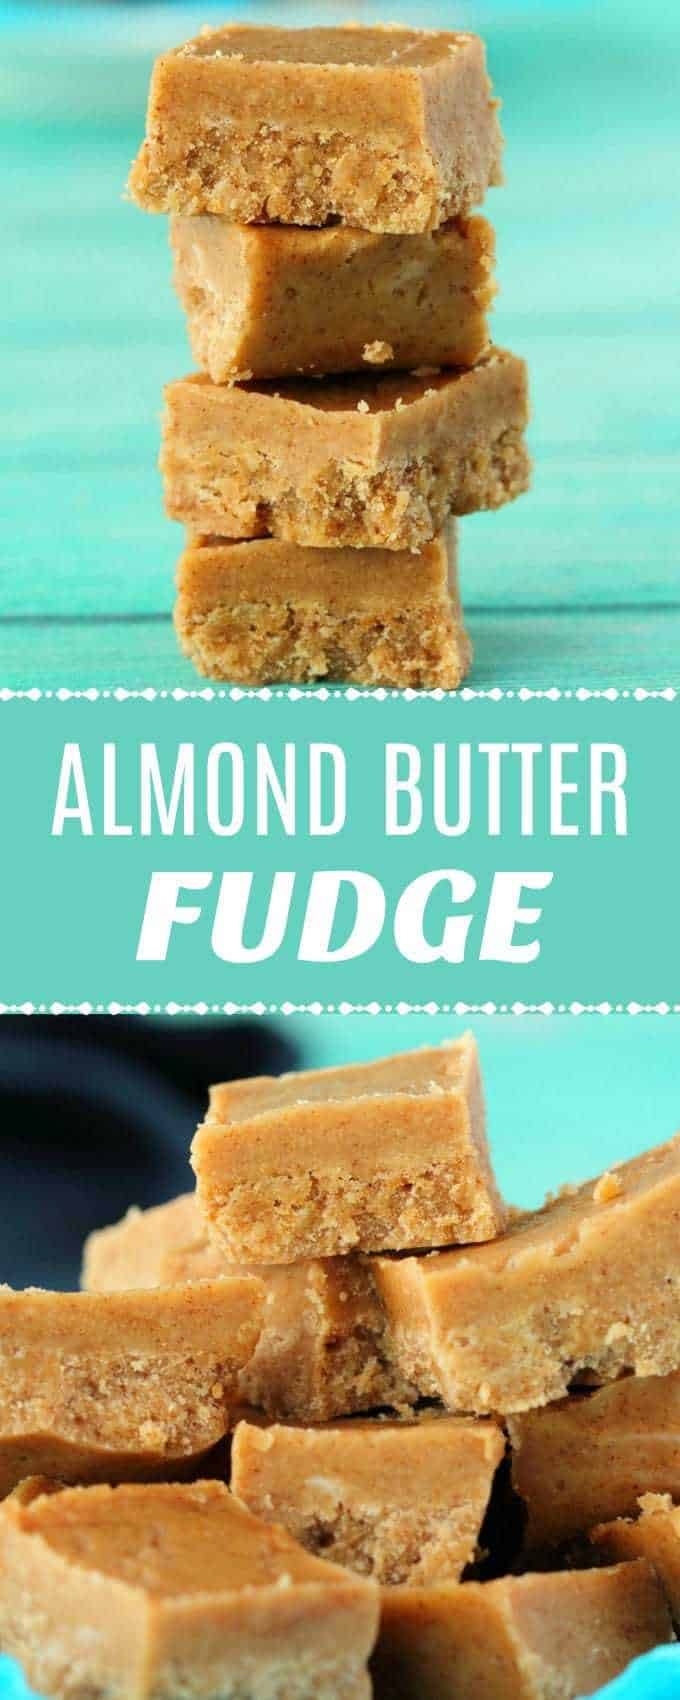 Super easy 4-ingredient almond butter fudge. Deliciously rich, creamy and smooth and you can make it in minutes! Vegan and gluten-free. | lovingitvegan.com